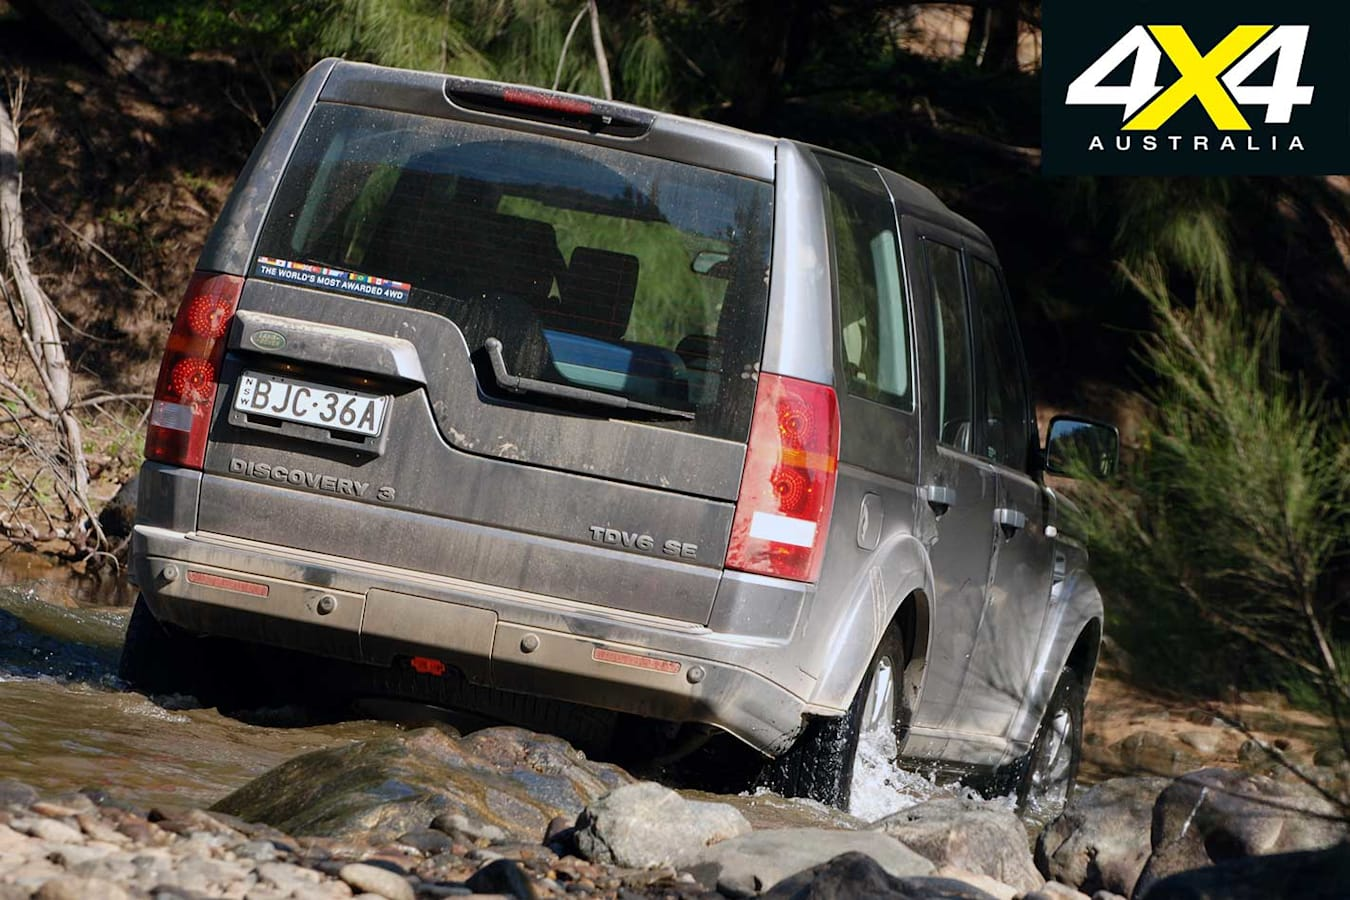 2009 Land Rover Discovery 3 Off Road Crawl Jpg